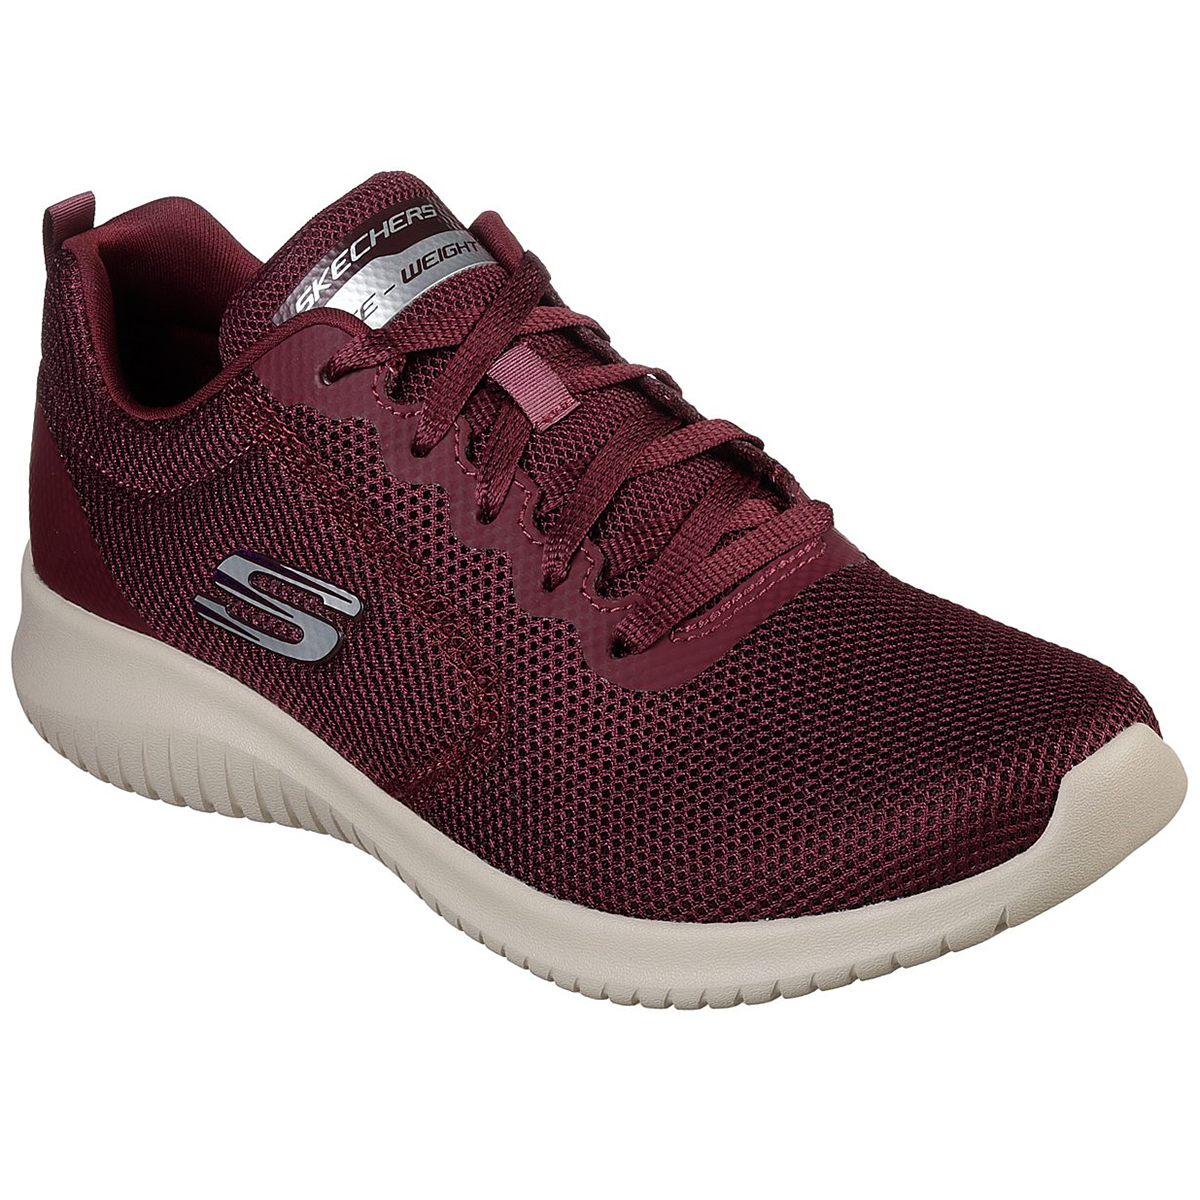 Skechers Women's Ultra Flex - Free Spirits Sneakers - Red, 9